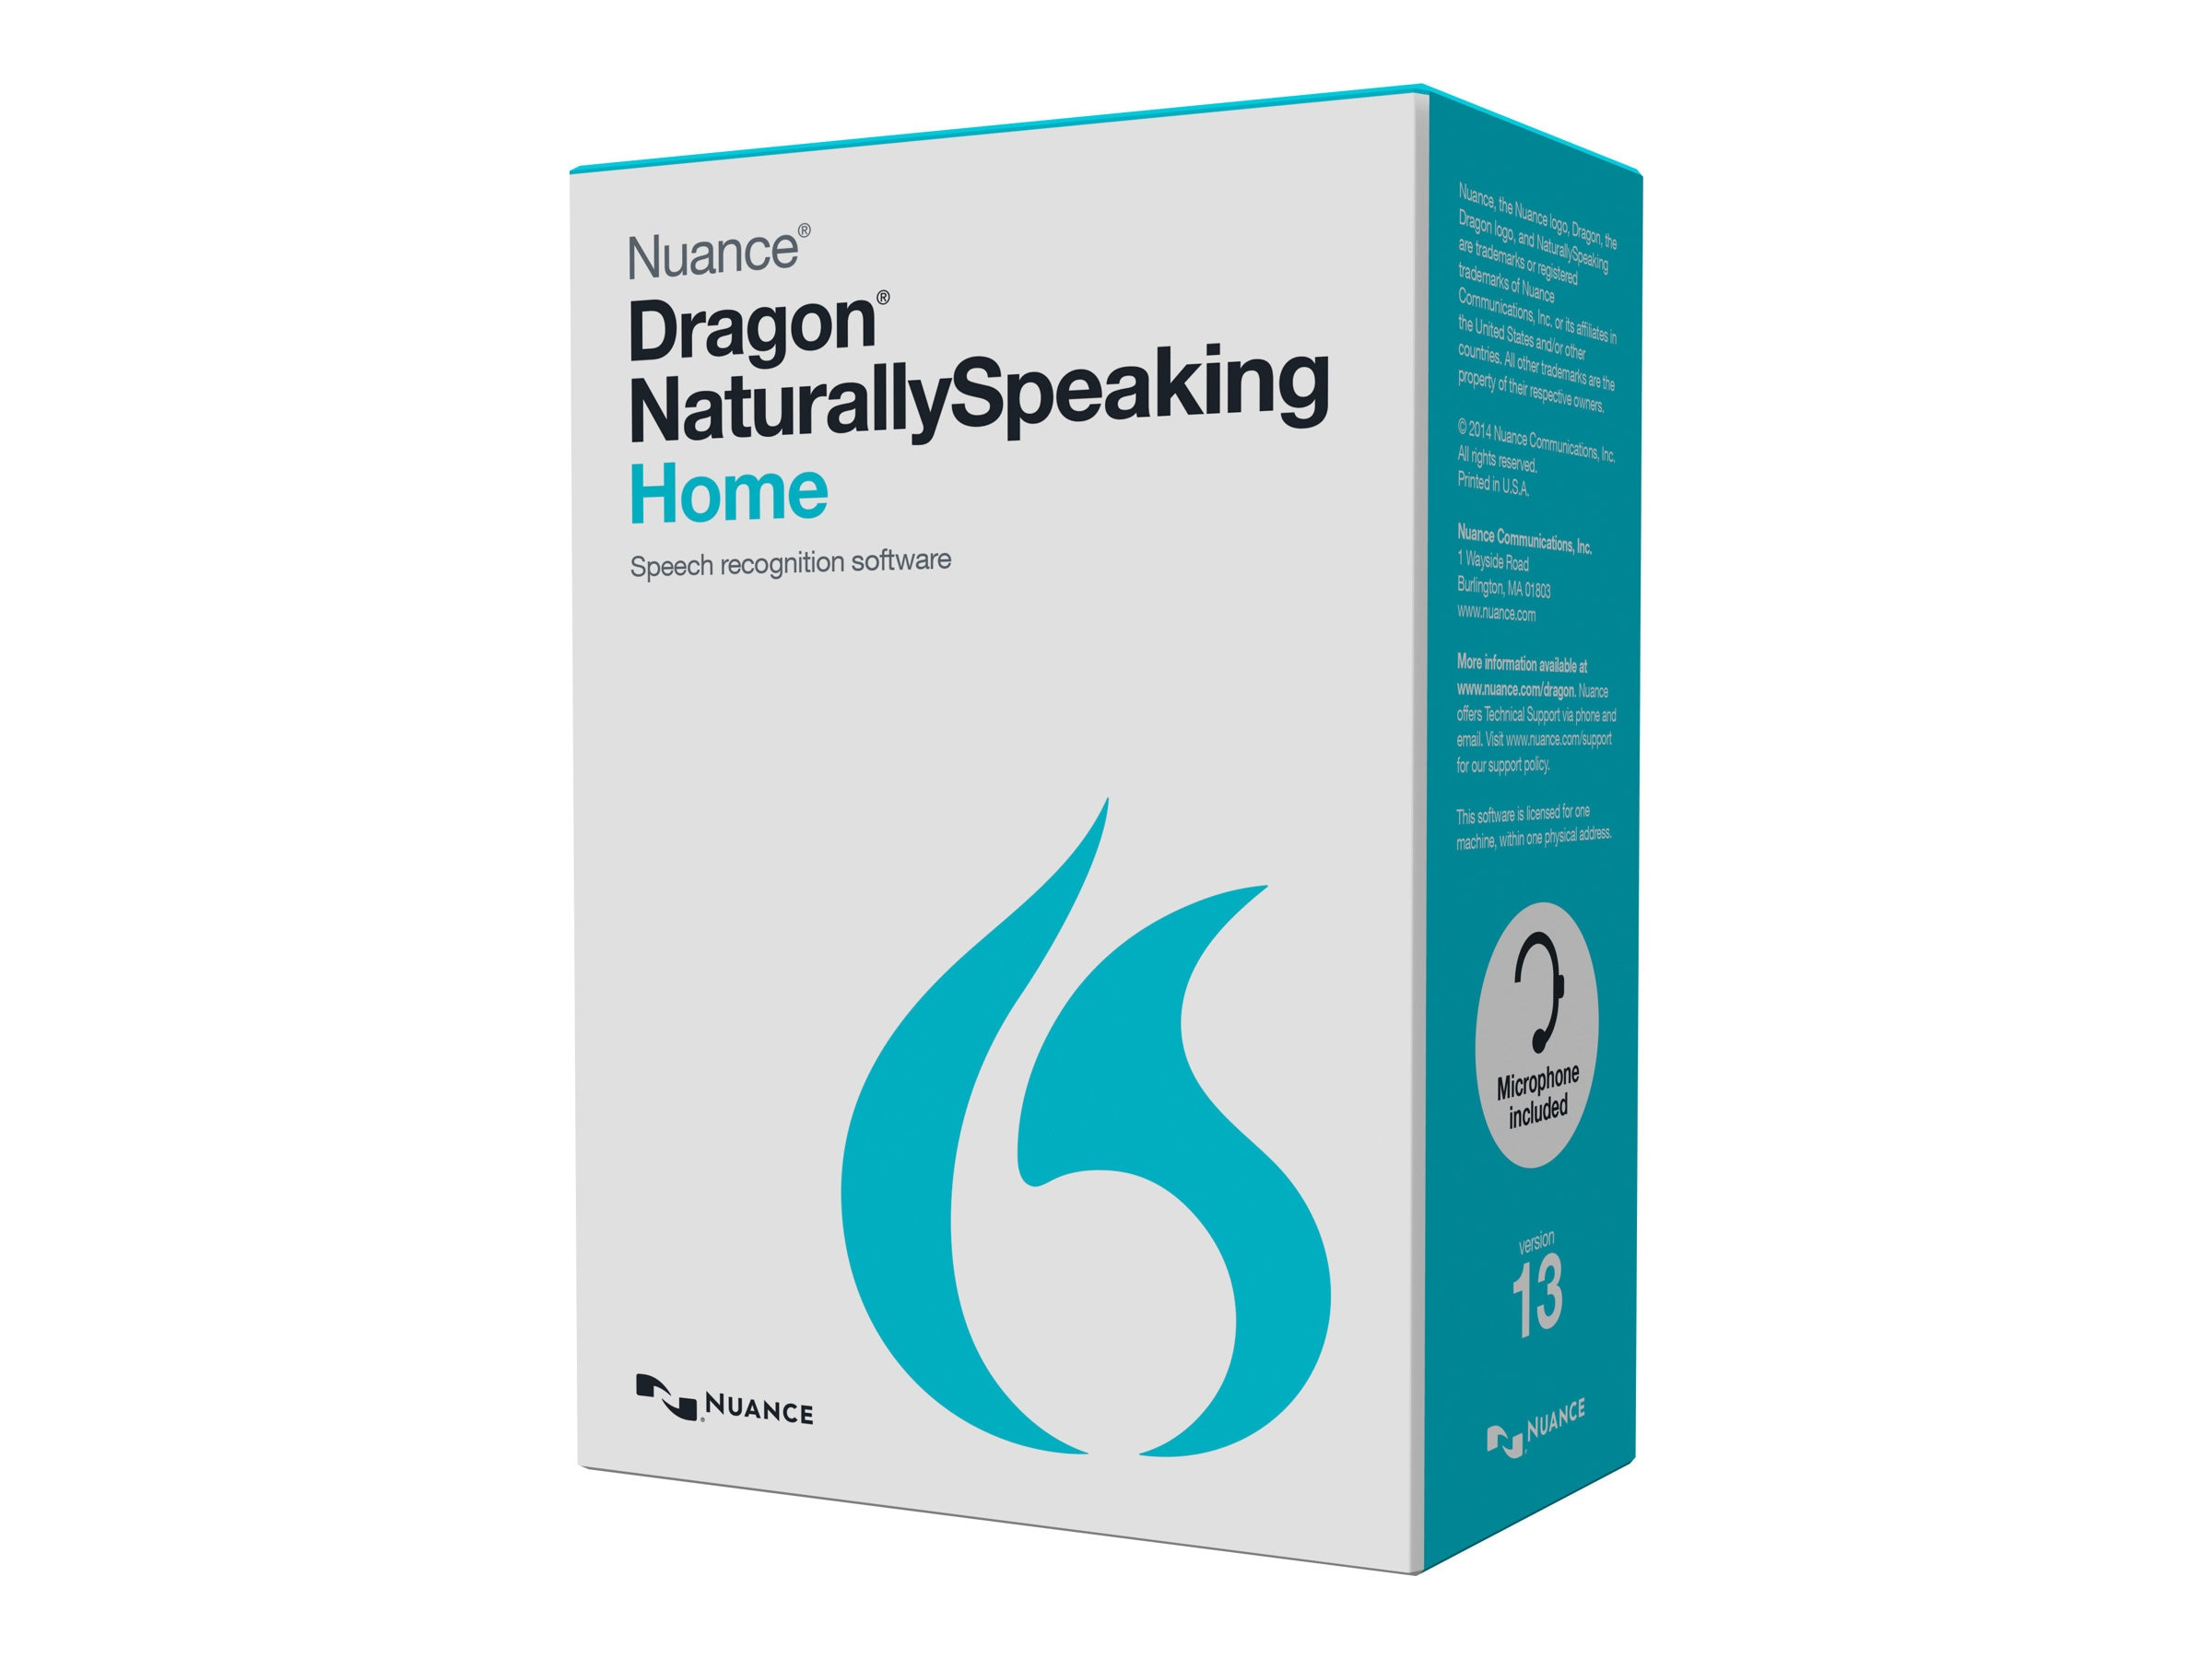 Nuance Dragon NaturallySpeaking 13.0 Home - US Retail